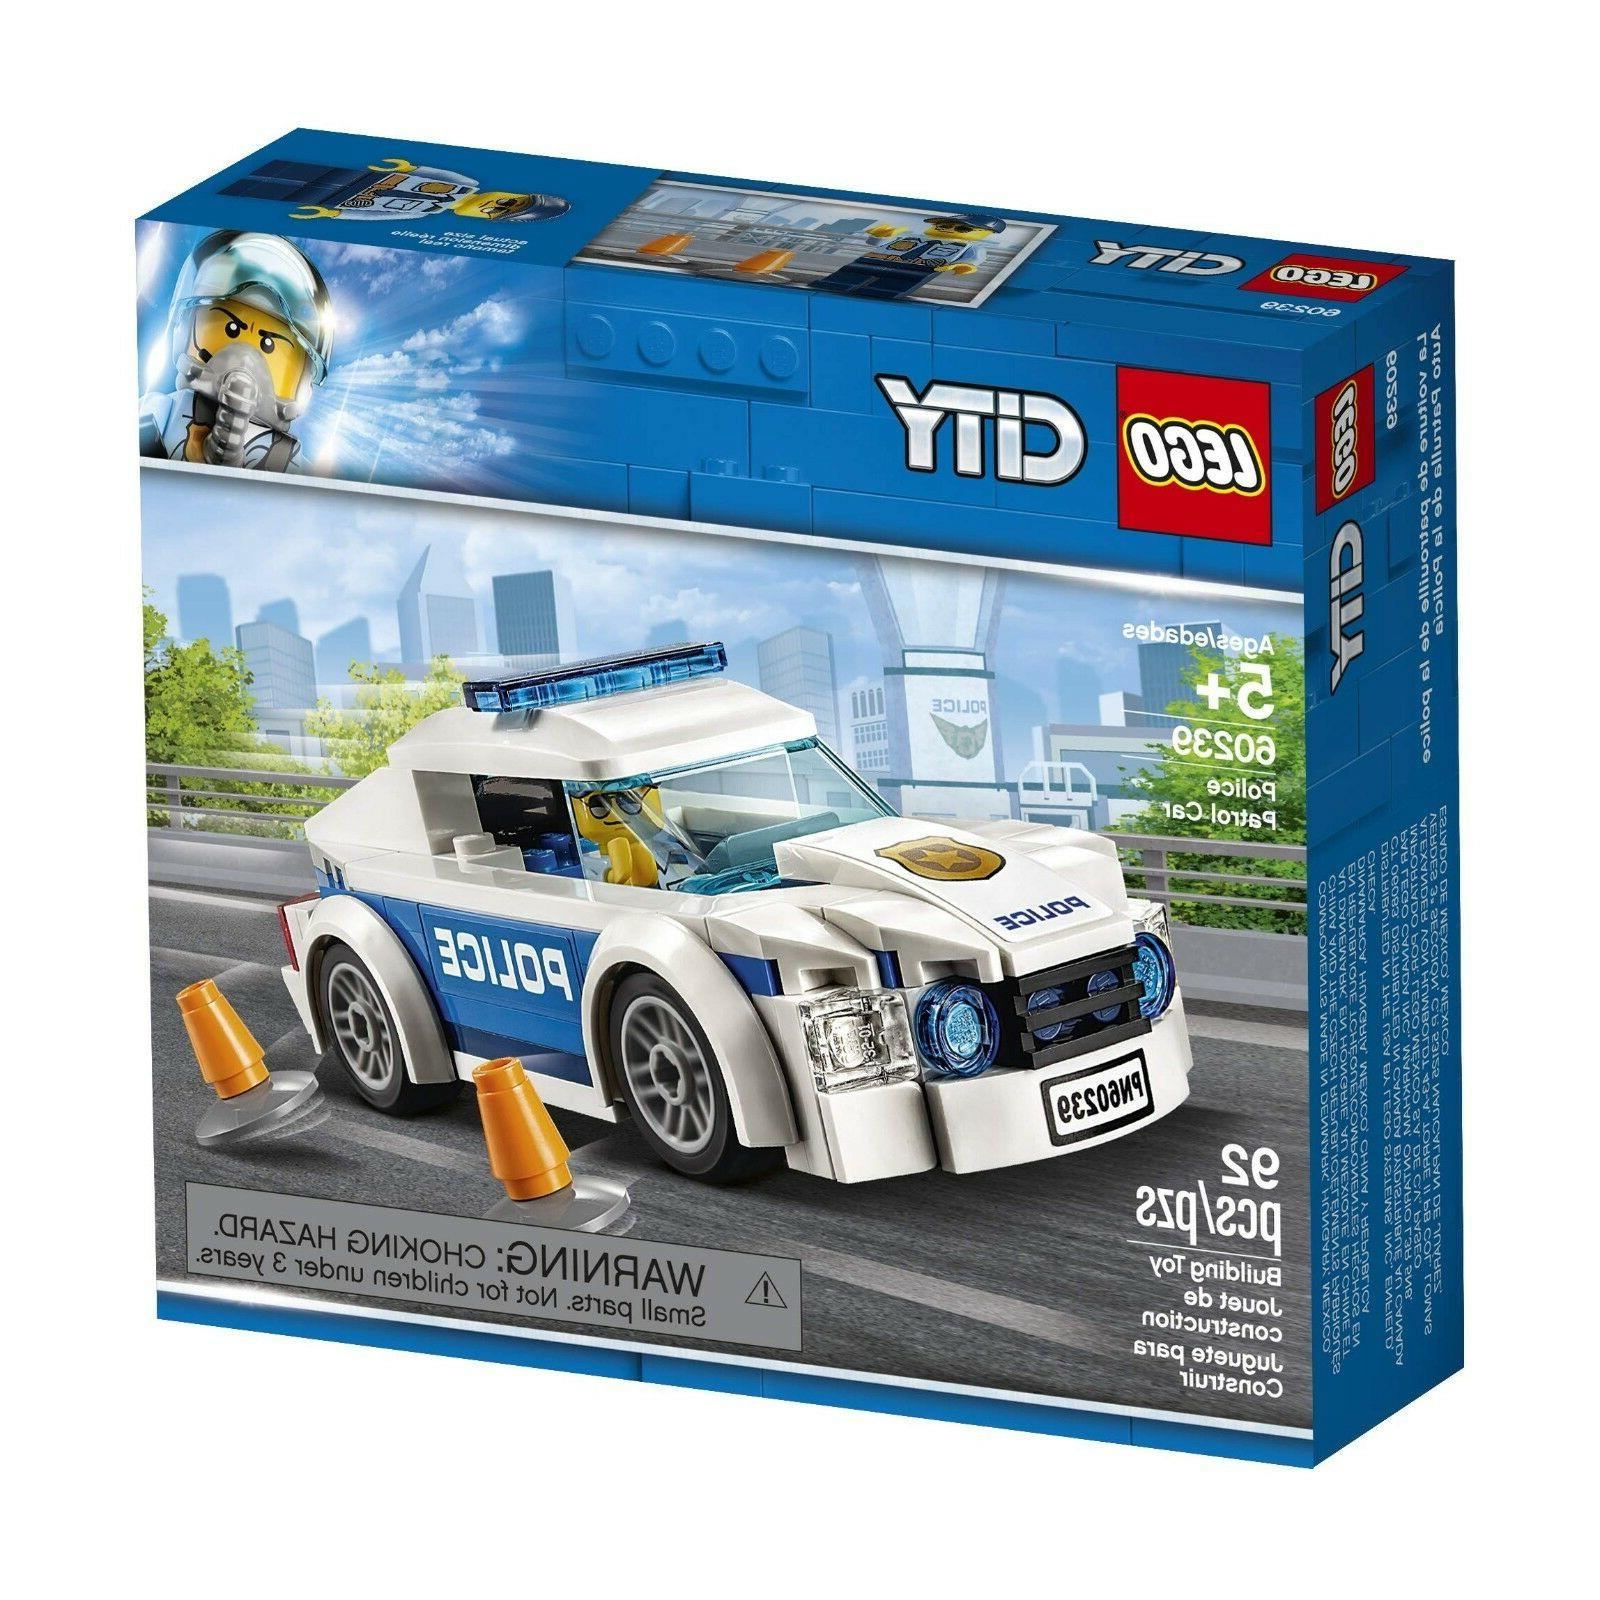 LEGO City Car Building Toy